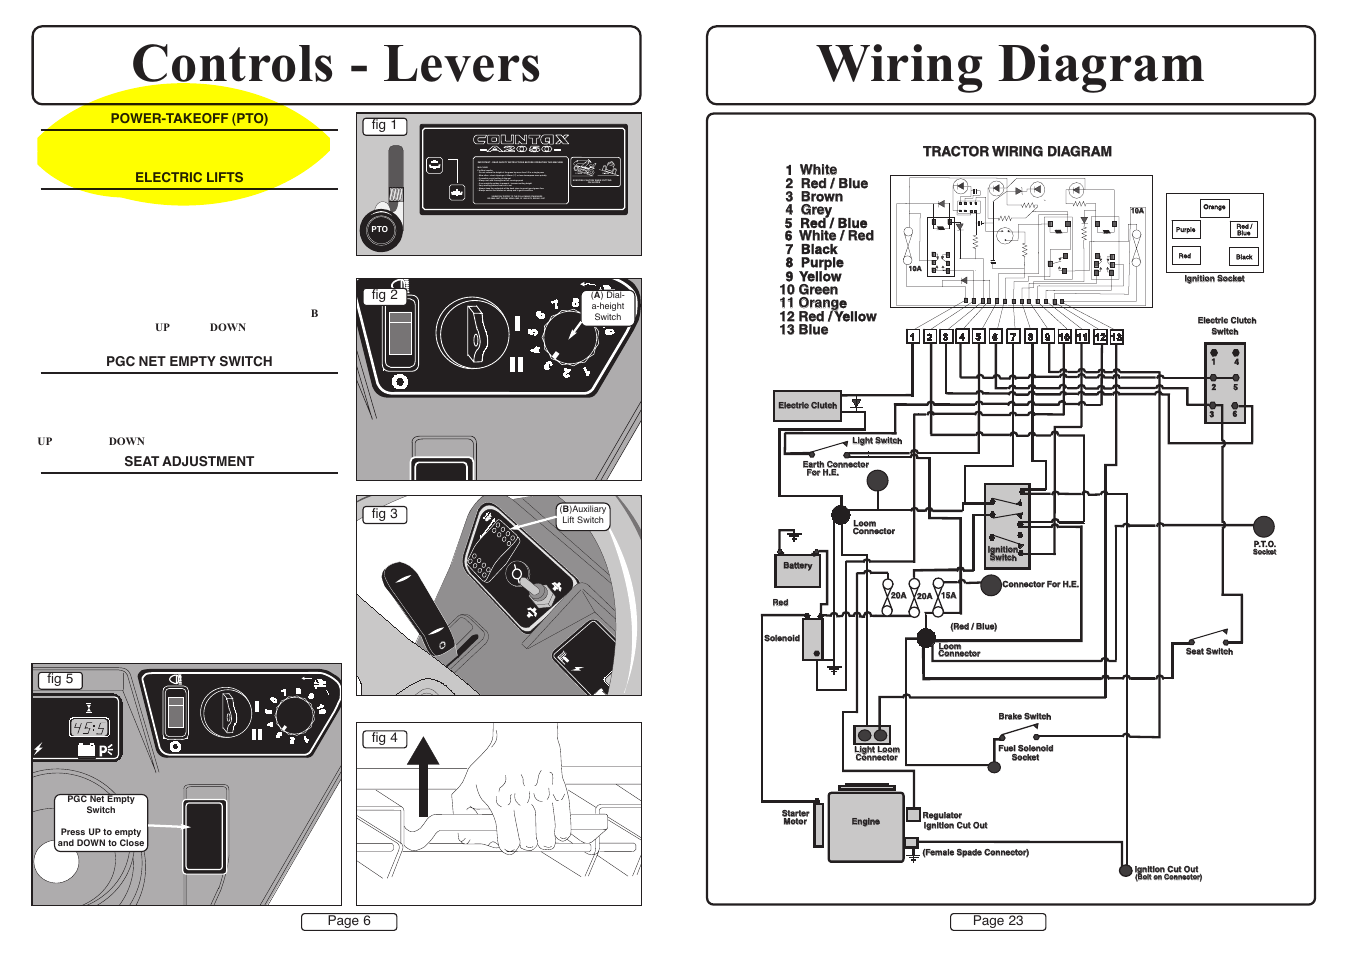 keep it clean wiring diagram 2003 ford f150 headlight controls levers countax a50 user manual